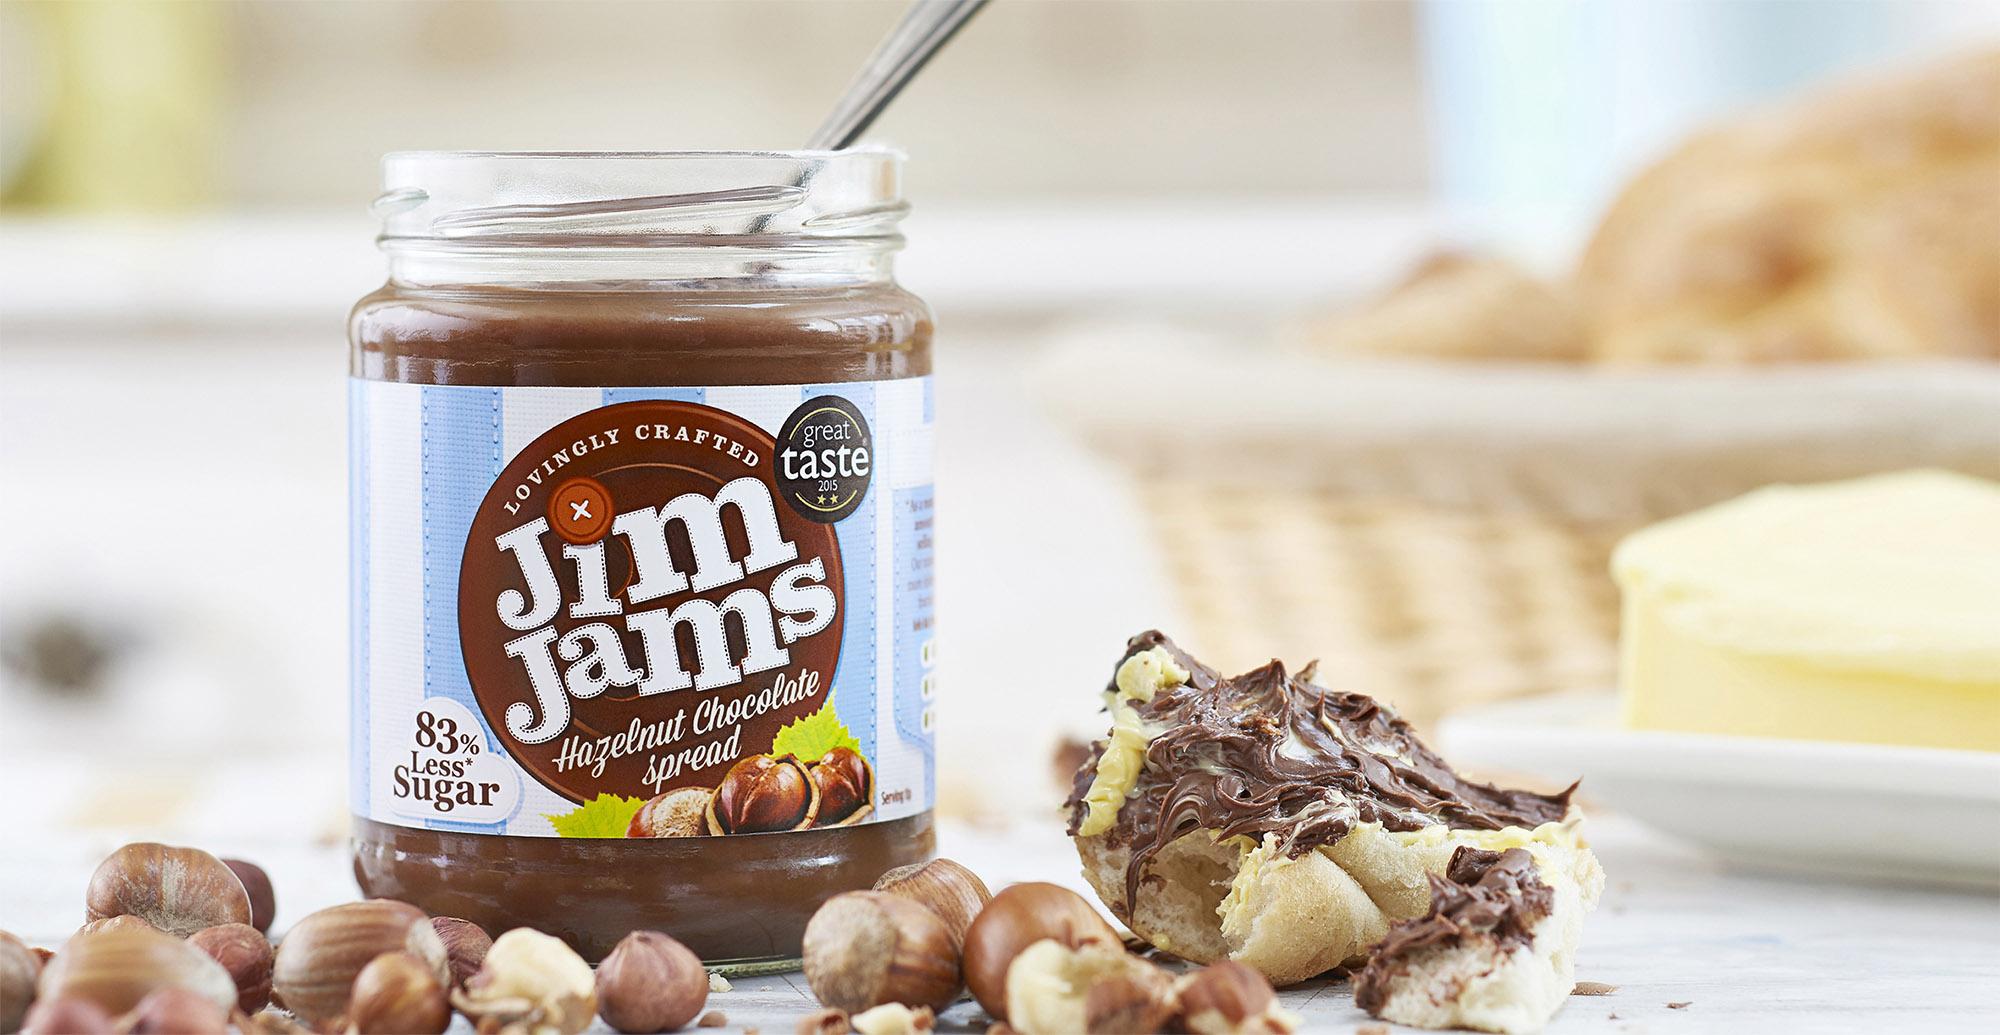 Food packaging design and brand identity for reduced sugar brand JimJams by Design Happy London - Photography of jimjams packaging design